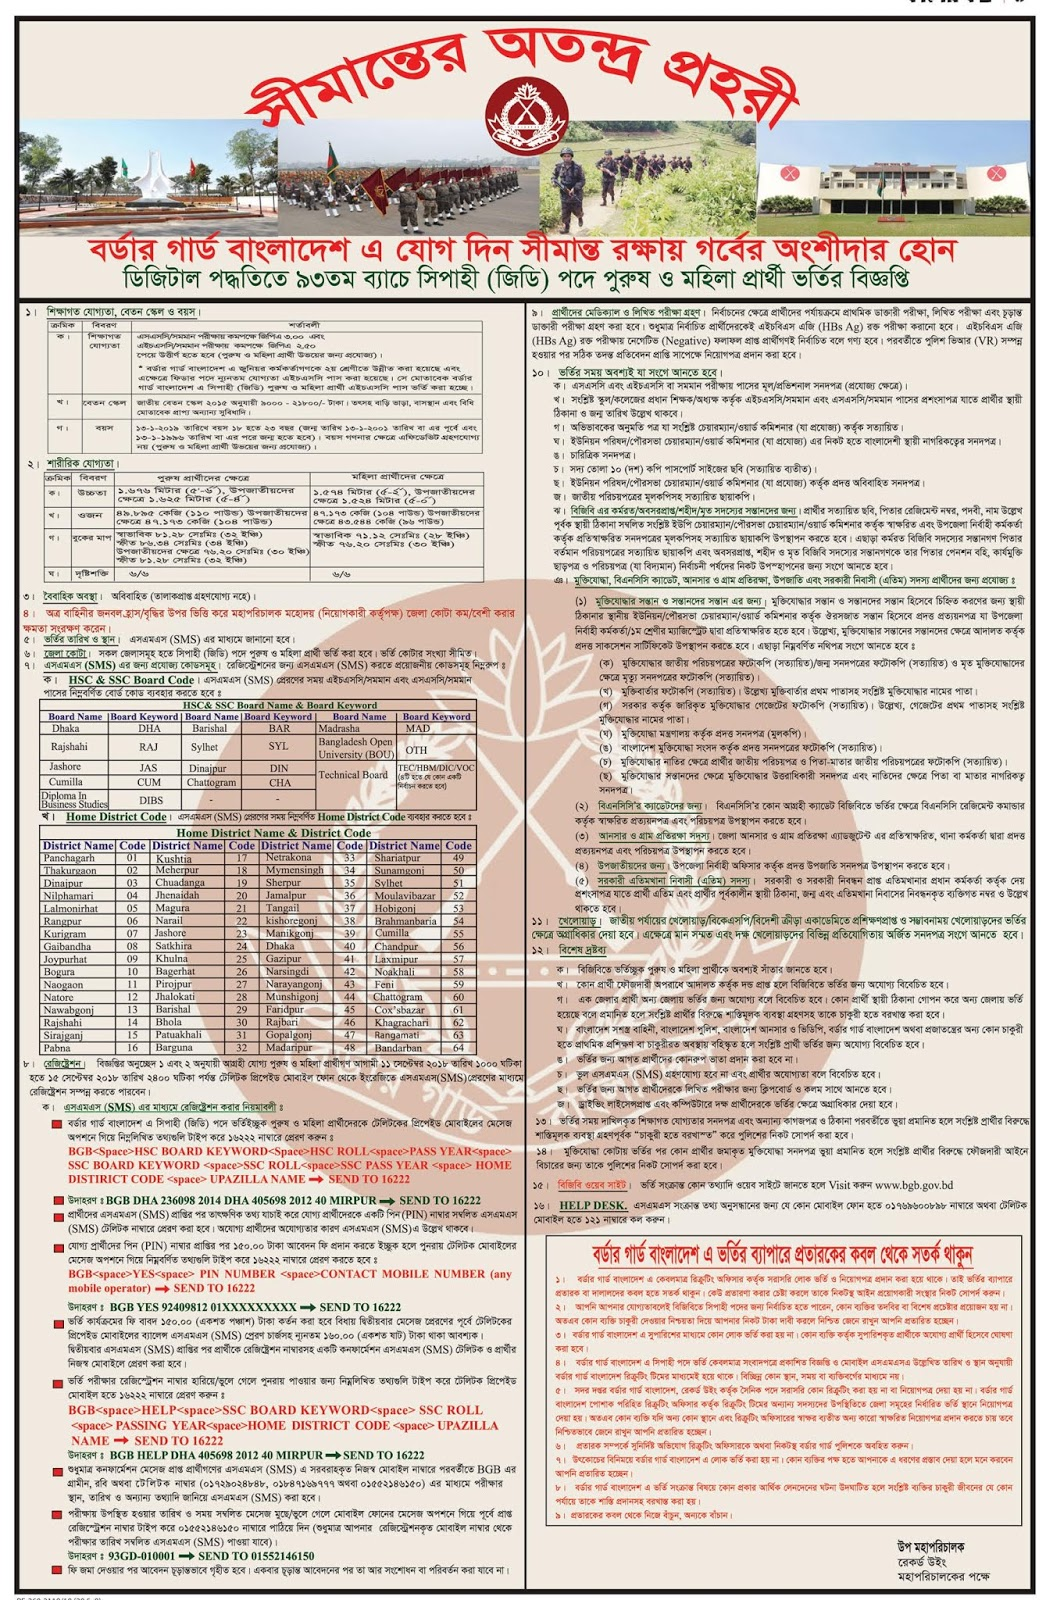 Border Guard Bangladesh (BGB) 93th batch soldier (GD) Recruitment Circular 2018